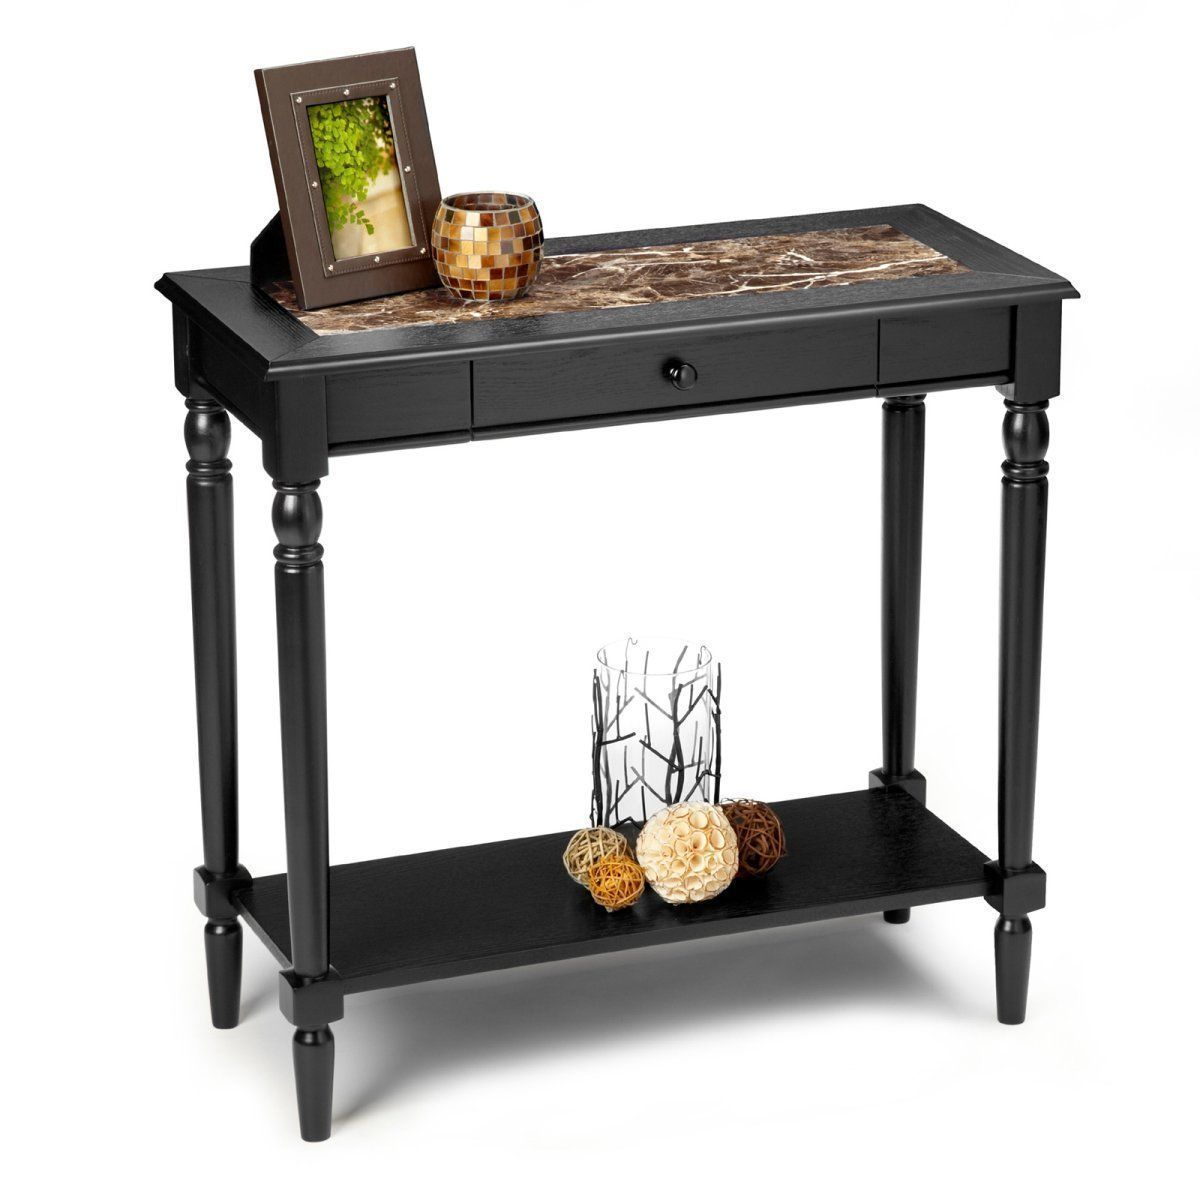 Superb img of  Black Faux Marble Wood Console Table Drawer Shelf Storage Tables with #9EB219 color and 1200x1200 pixels